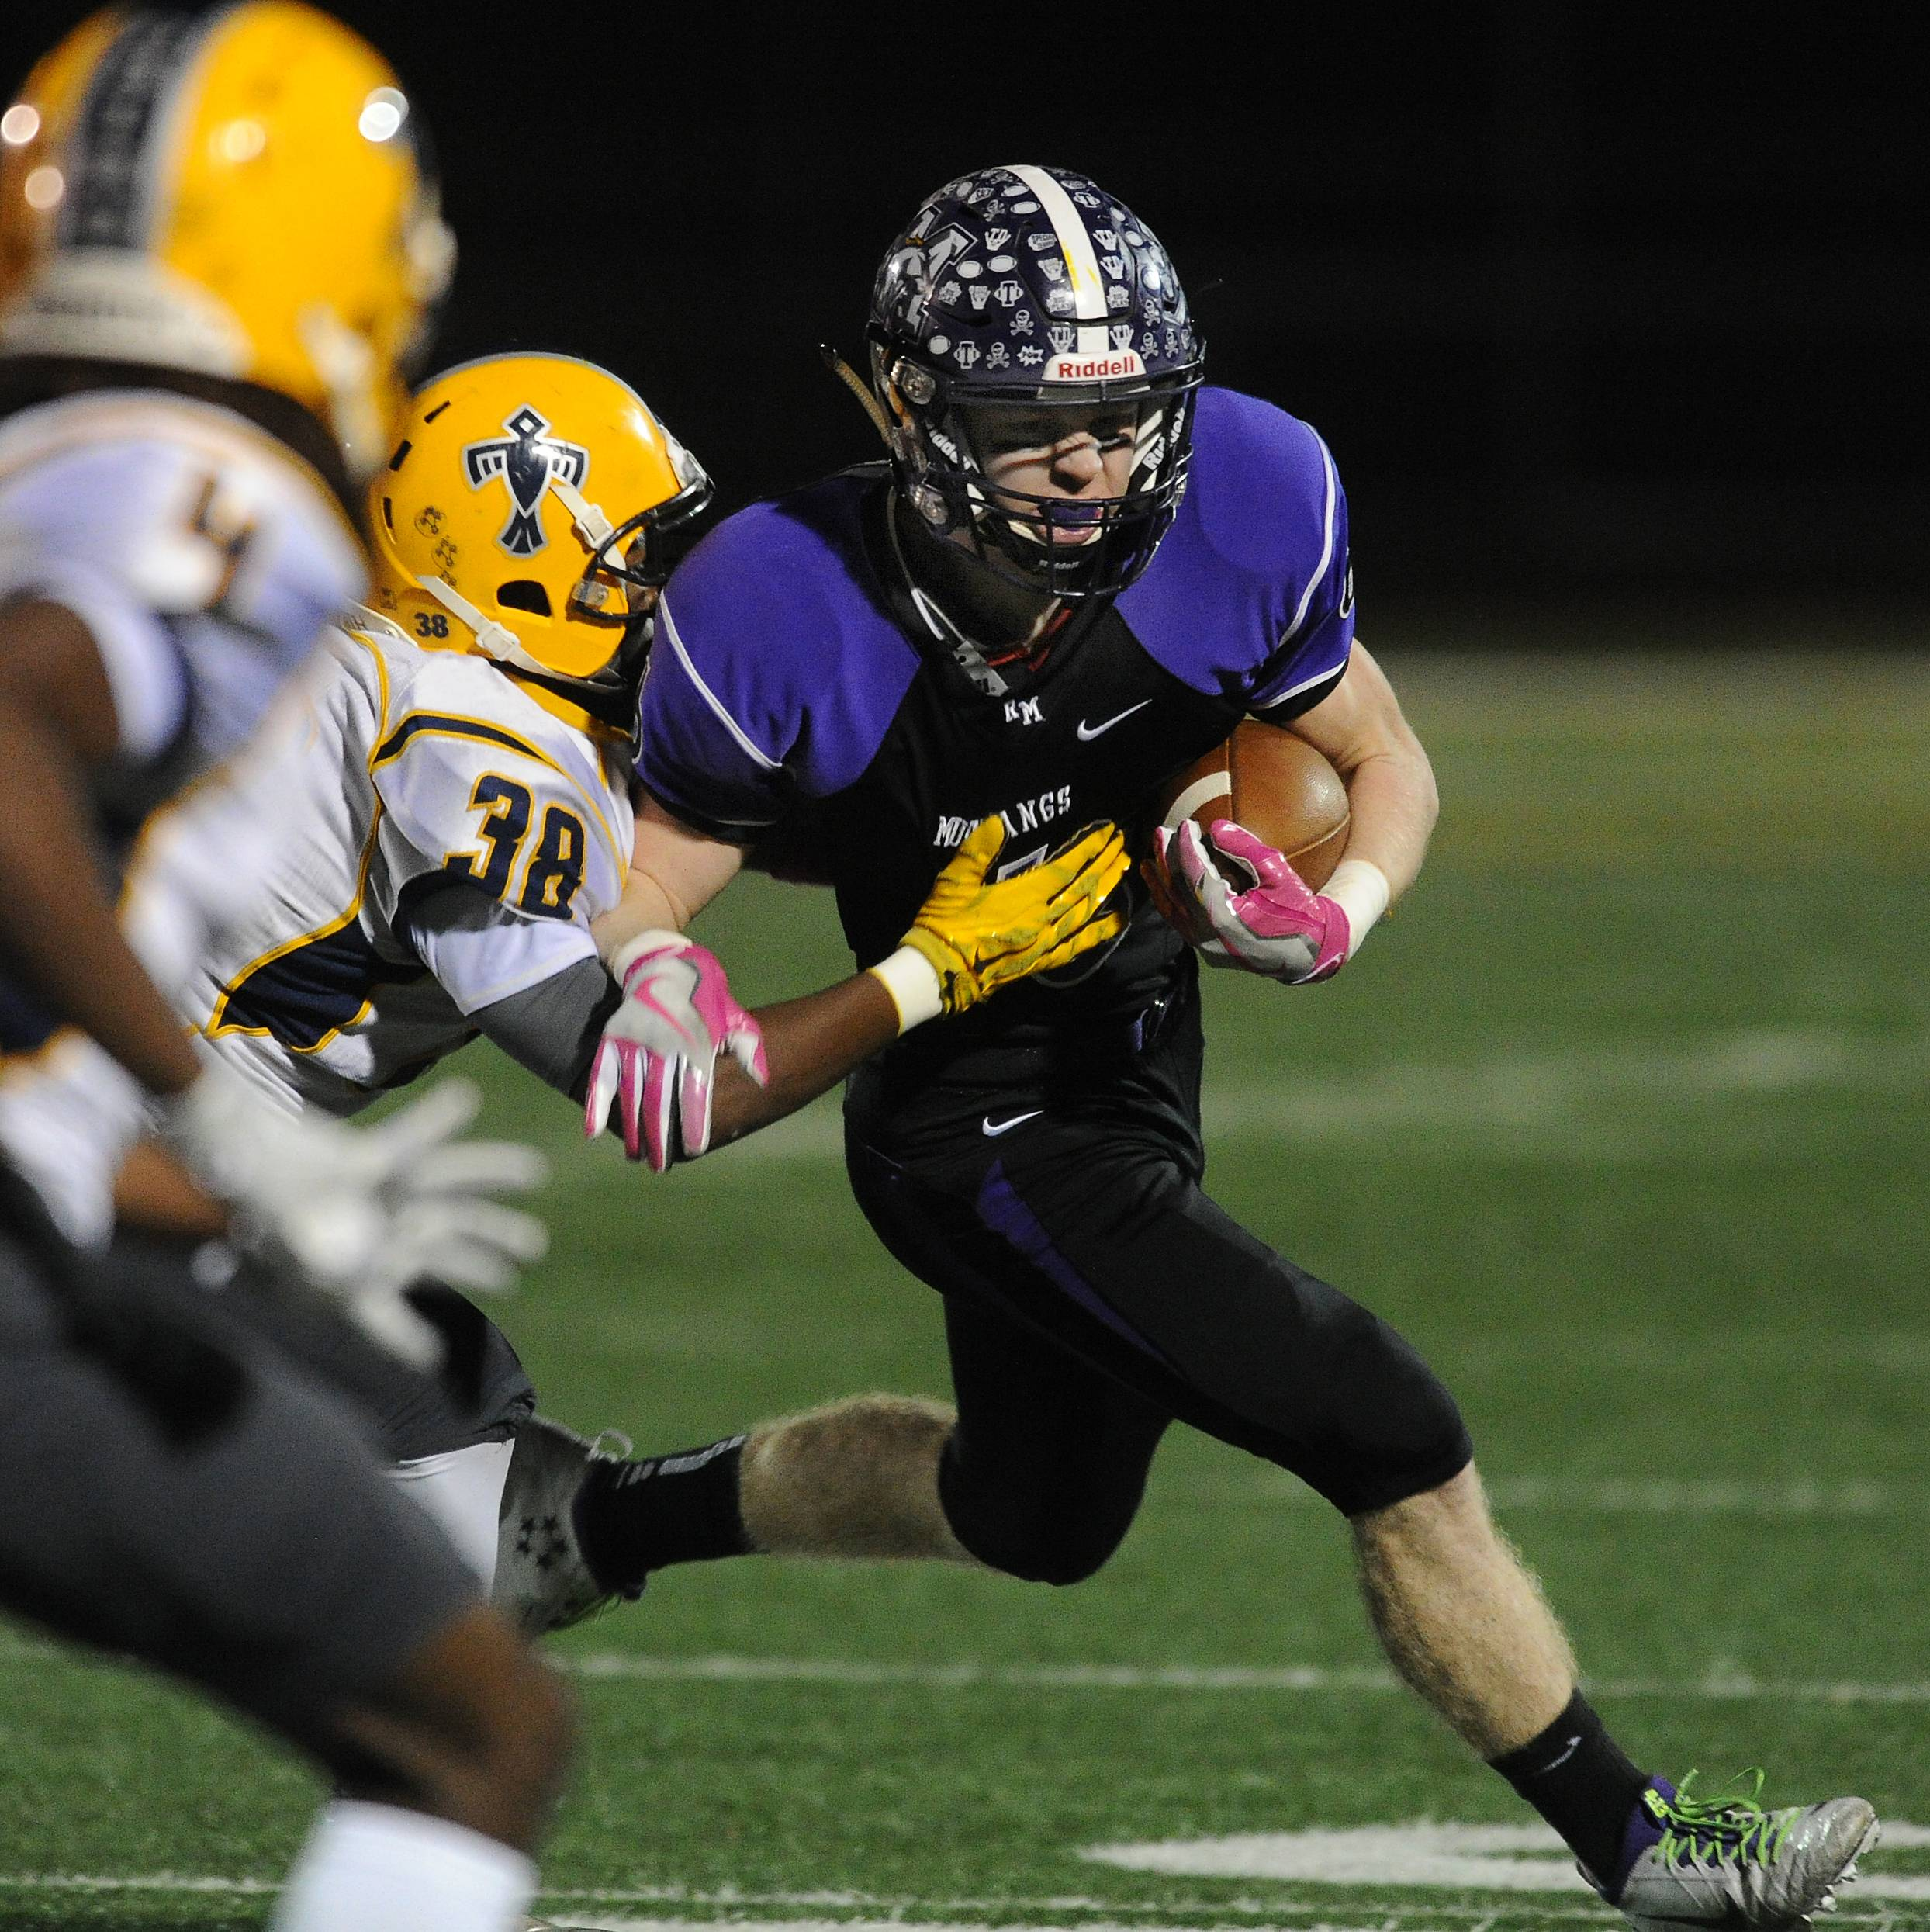 Rolling Meadows' Nick Delporte runs for yardage in the first quarter despite pressure from Thornwood's Bre Love in the first round of the Class 7A football playoffs at Meadows.